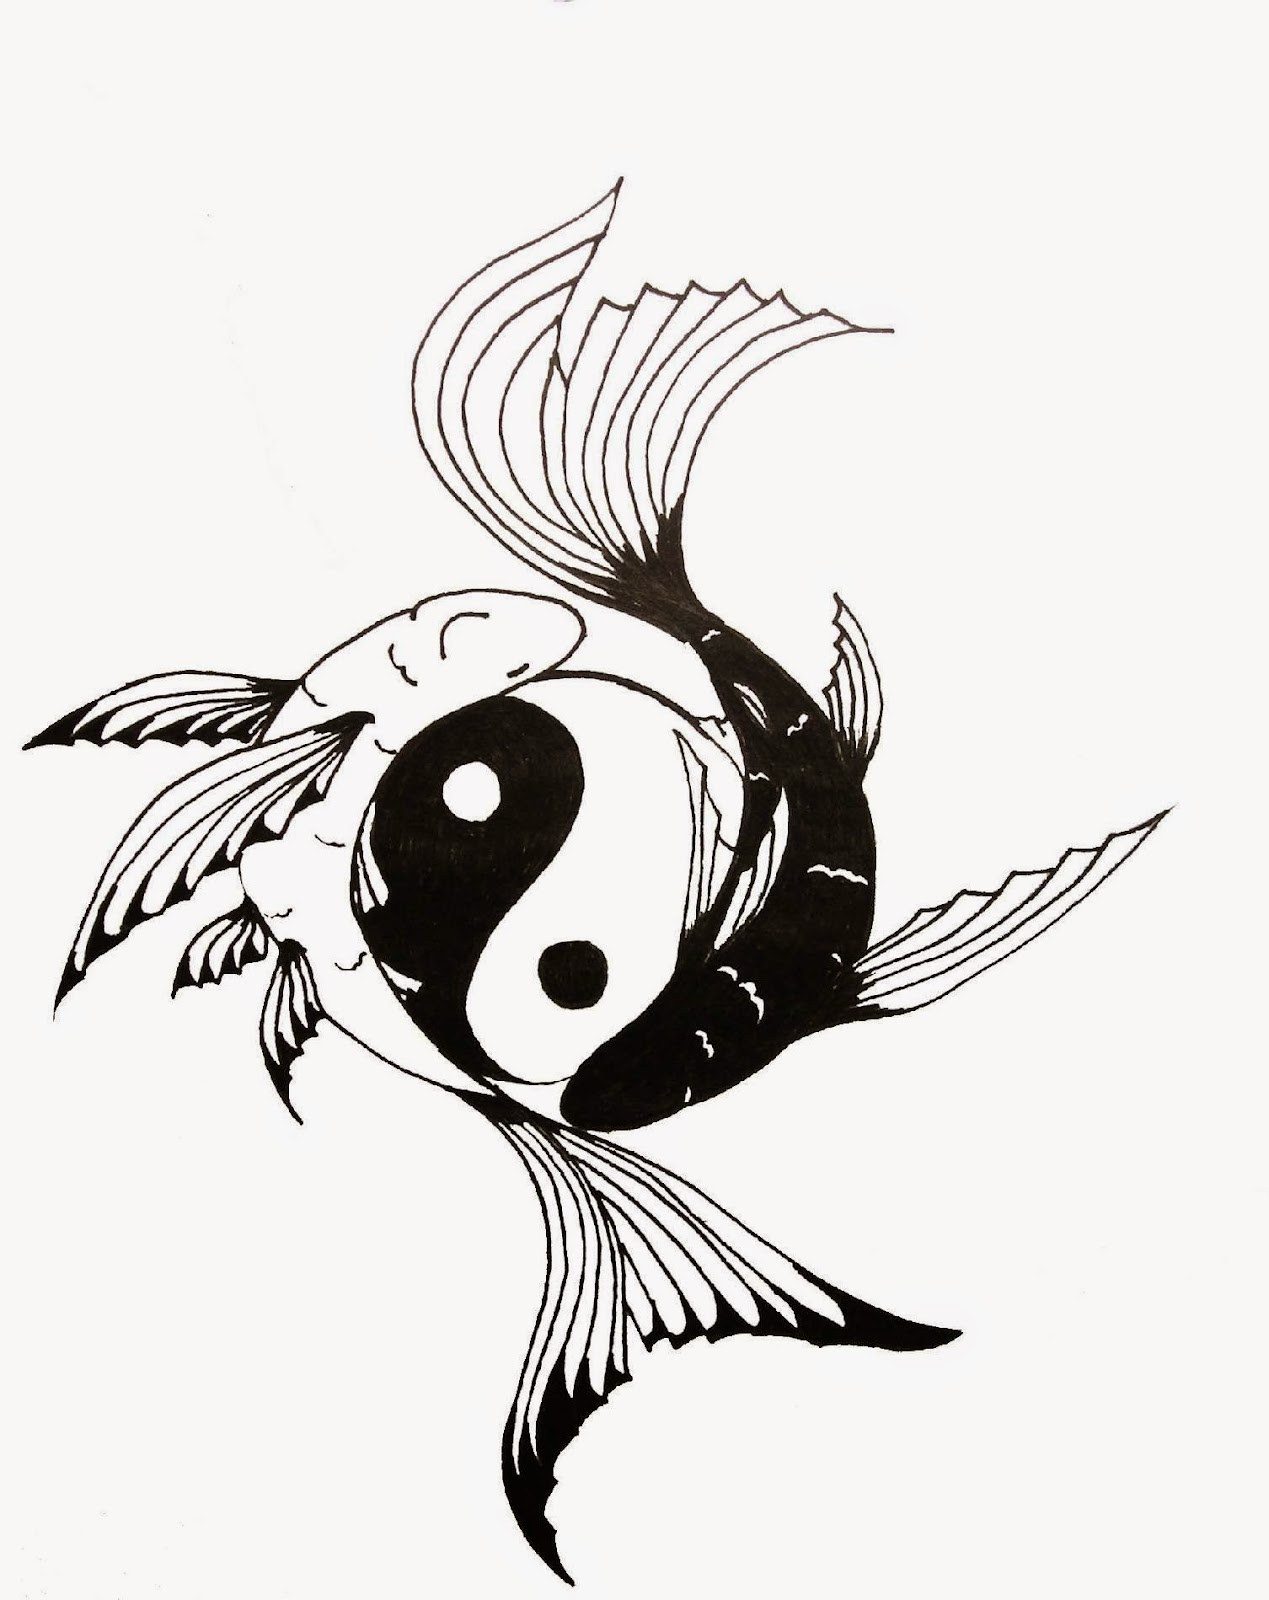 Ying yang tattoo tattoo designs for Yin yang fish tattoo